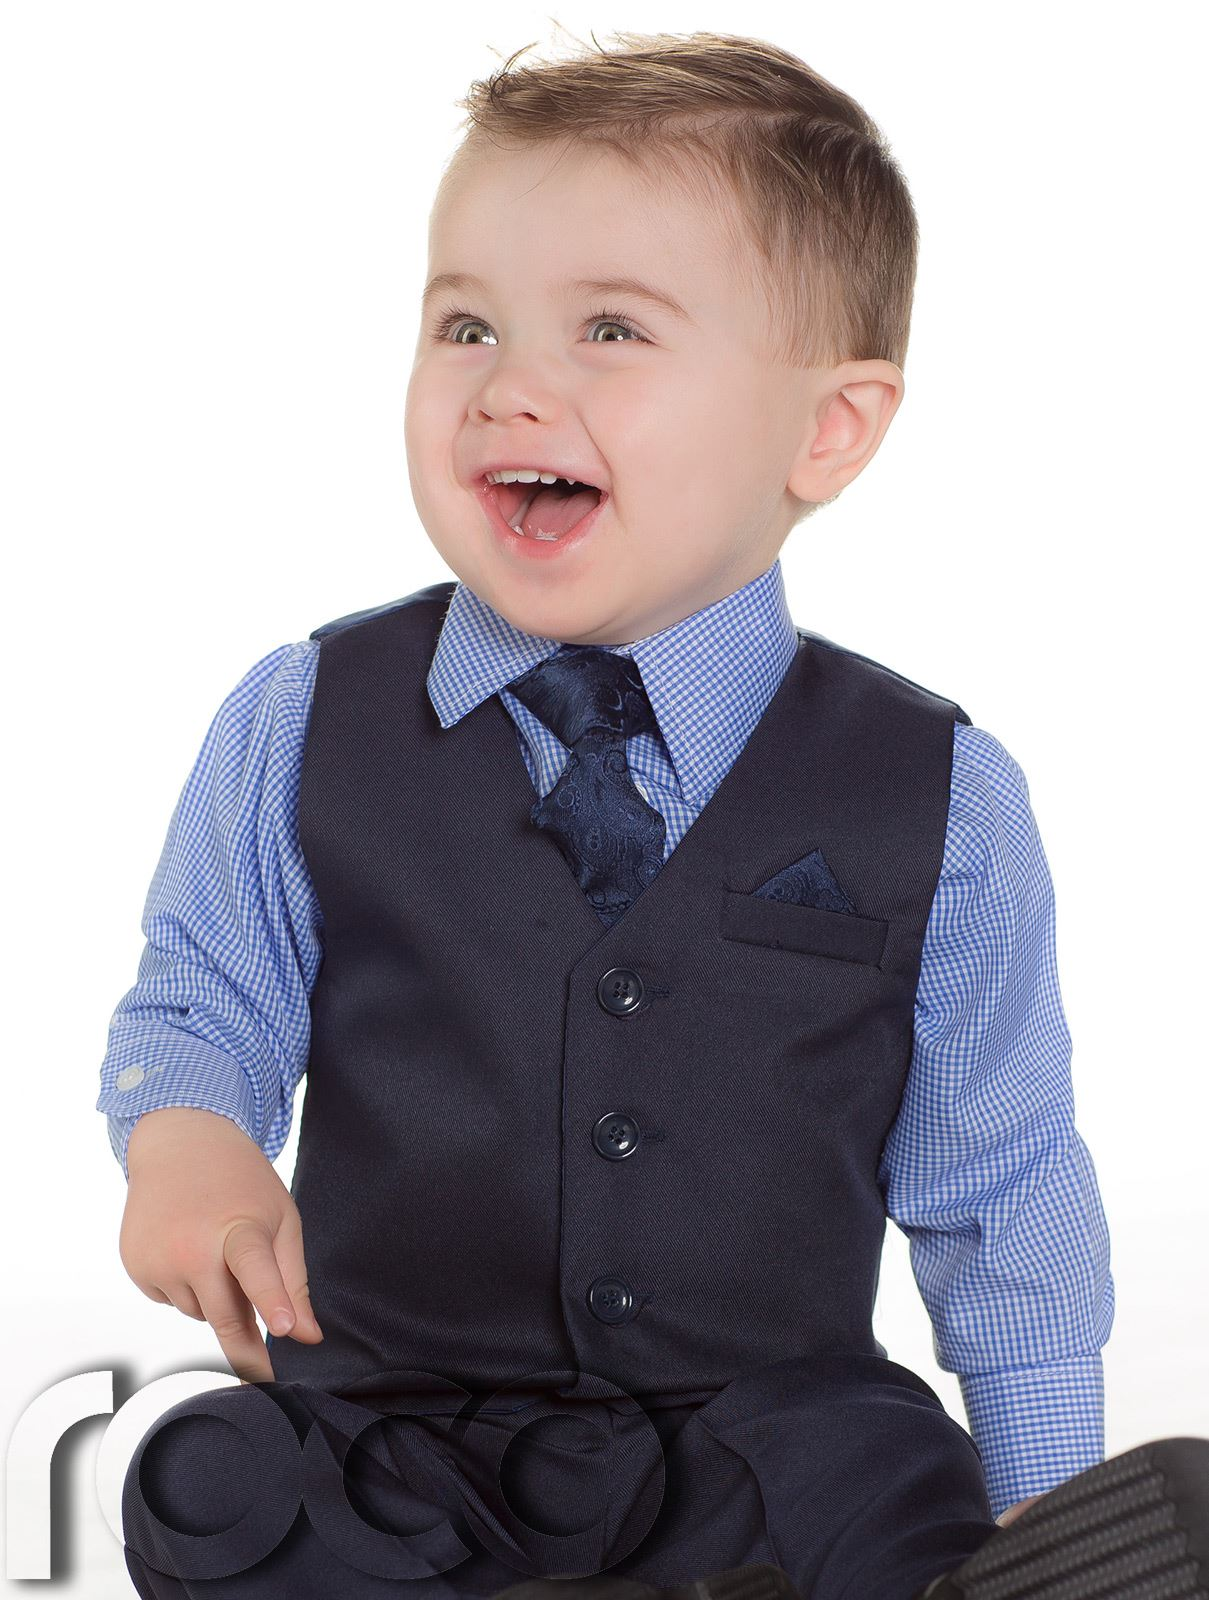 Celebrate special occasions with beautiful baby dress clothes from Sears. When there's a special event around the corner, the whole family can look their best while making memories that will last forever with new baby dress clothes for the little ones.